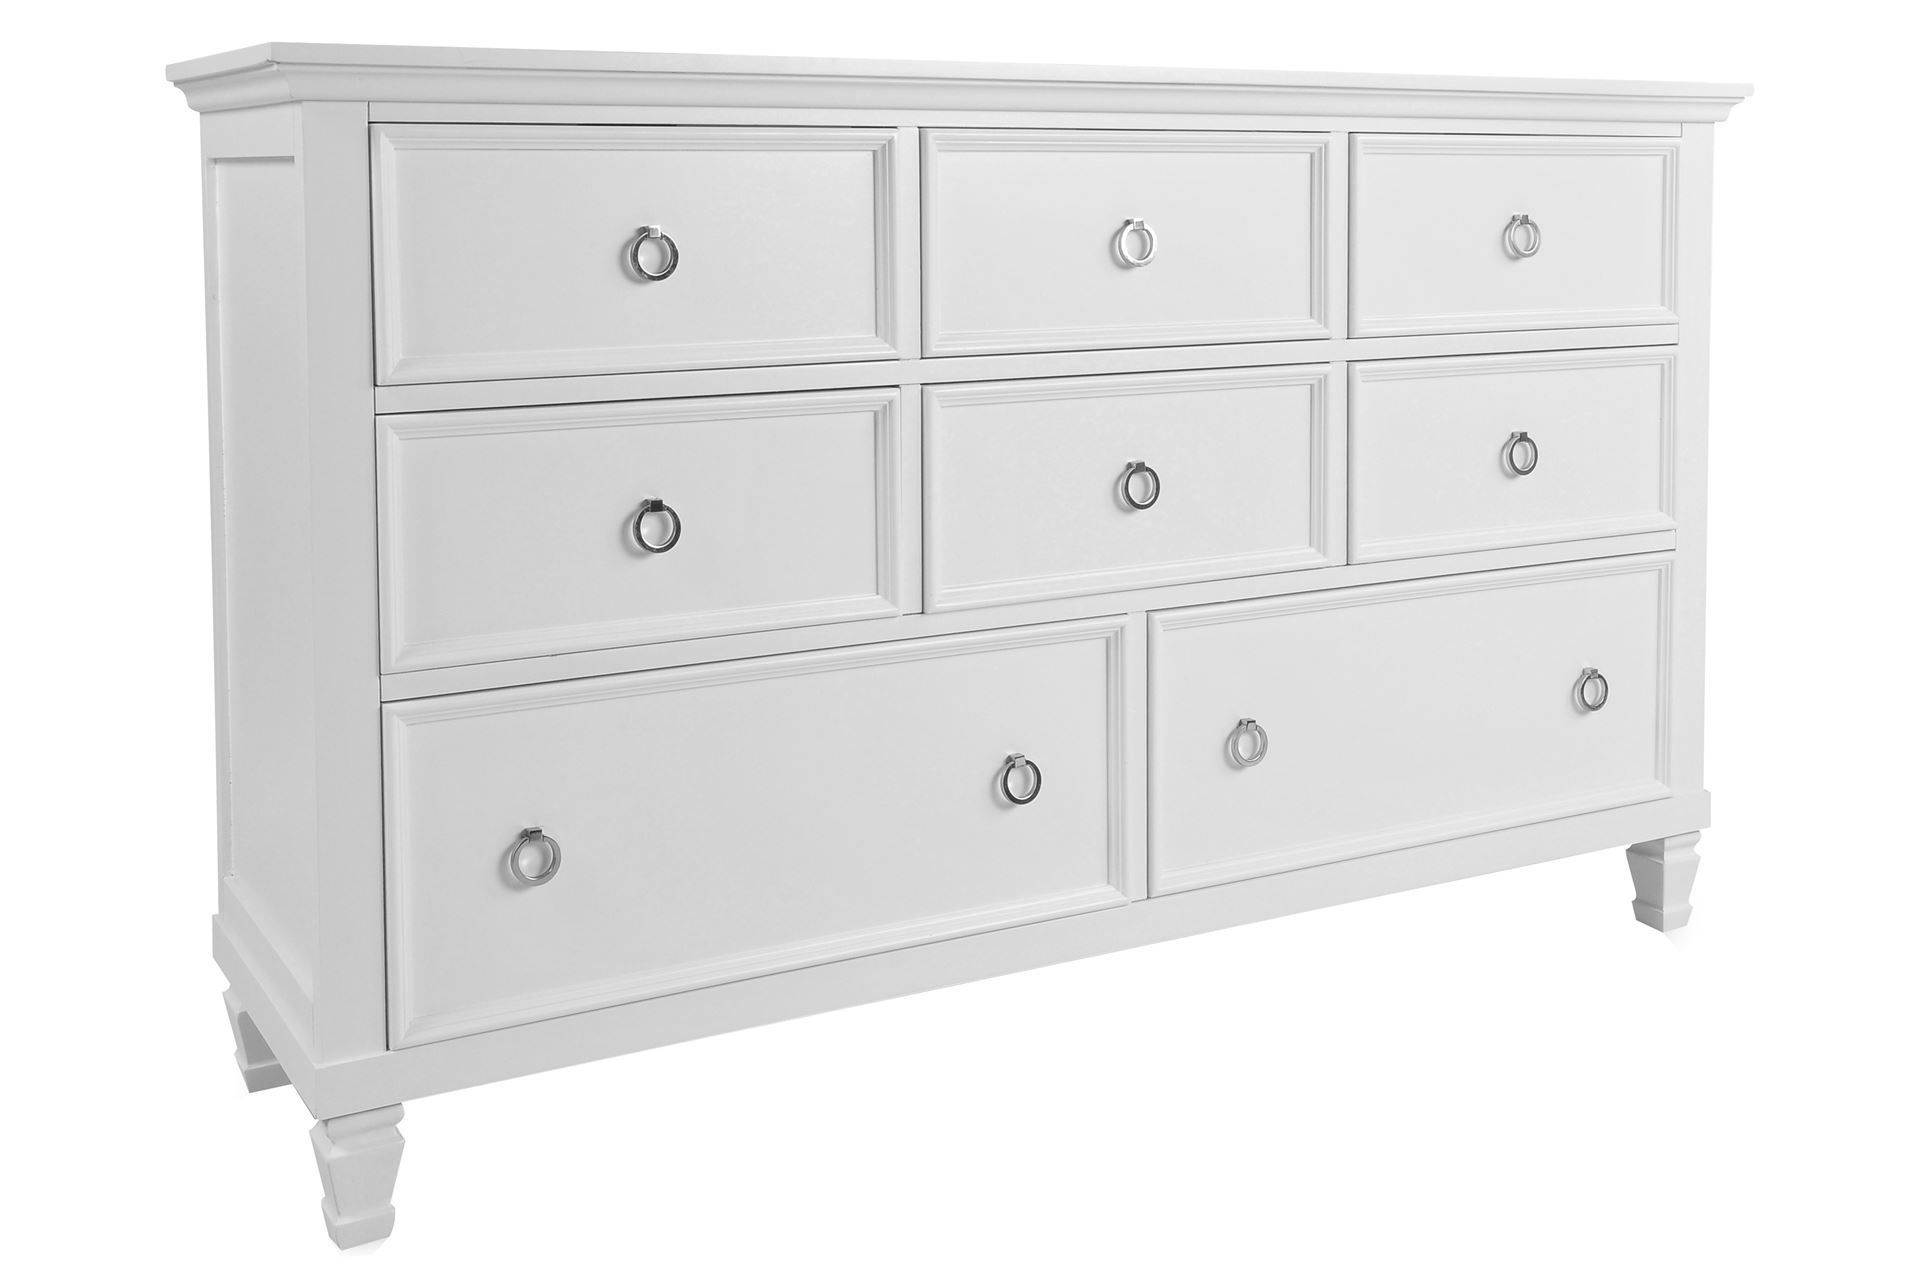 Bedroom Furniture Free Embly With Delivery